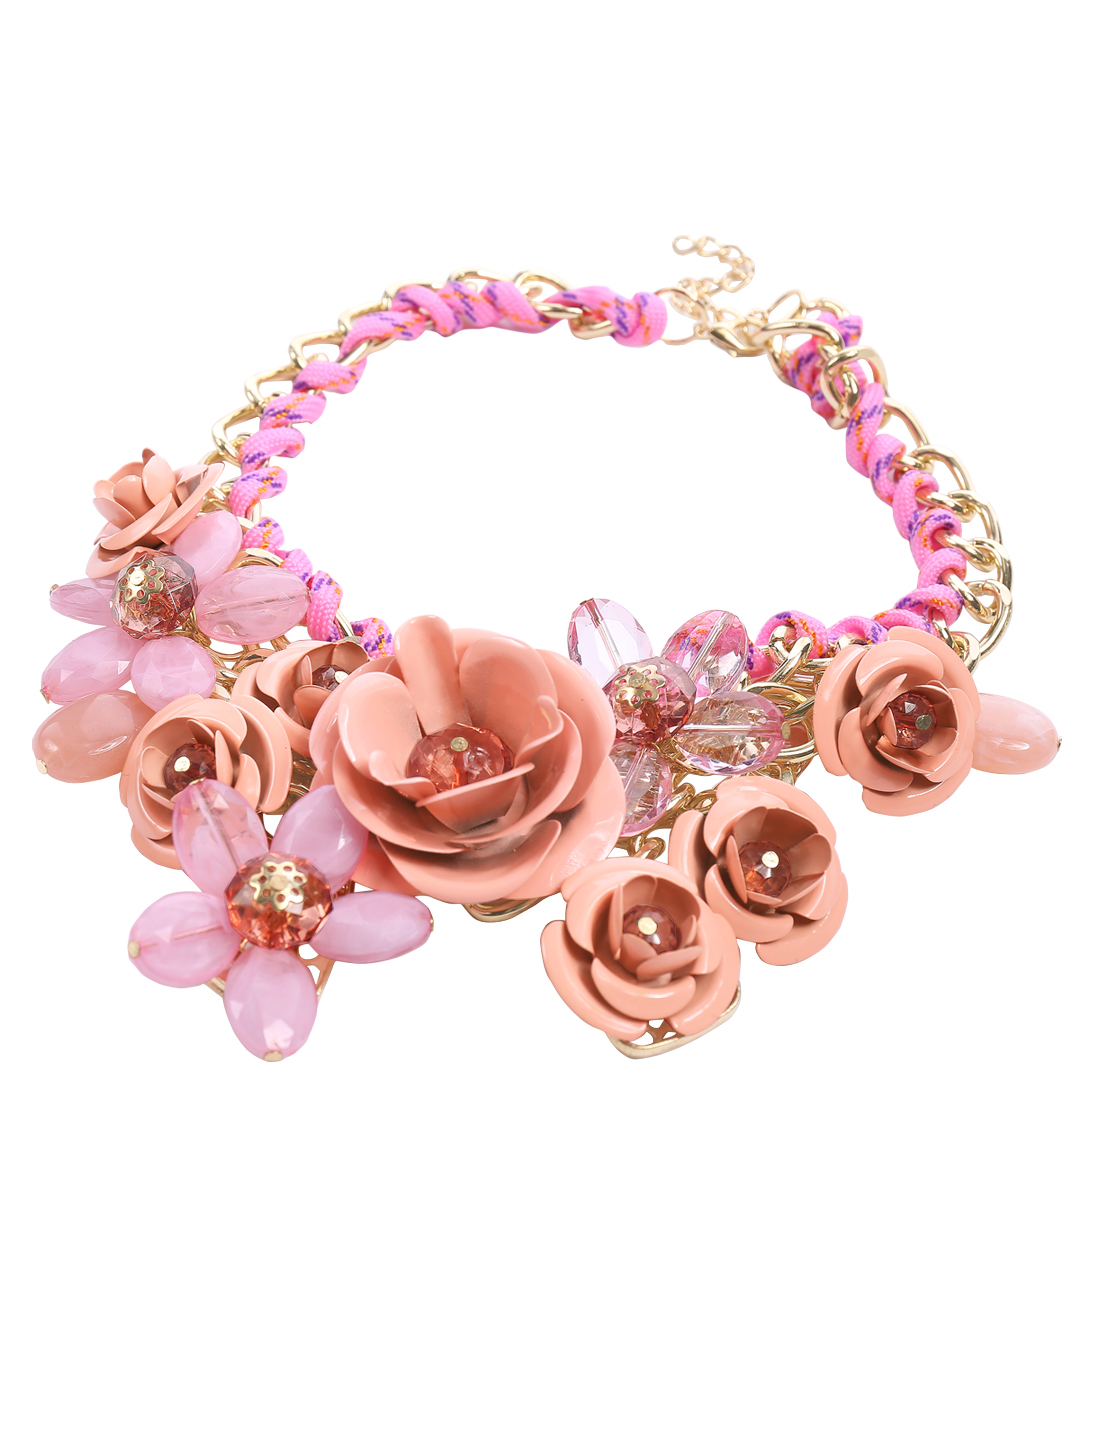 Gold Chain Crystal Pink Flower Statement Pendant Bib Necklace Choker